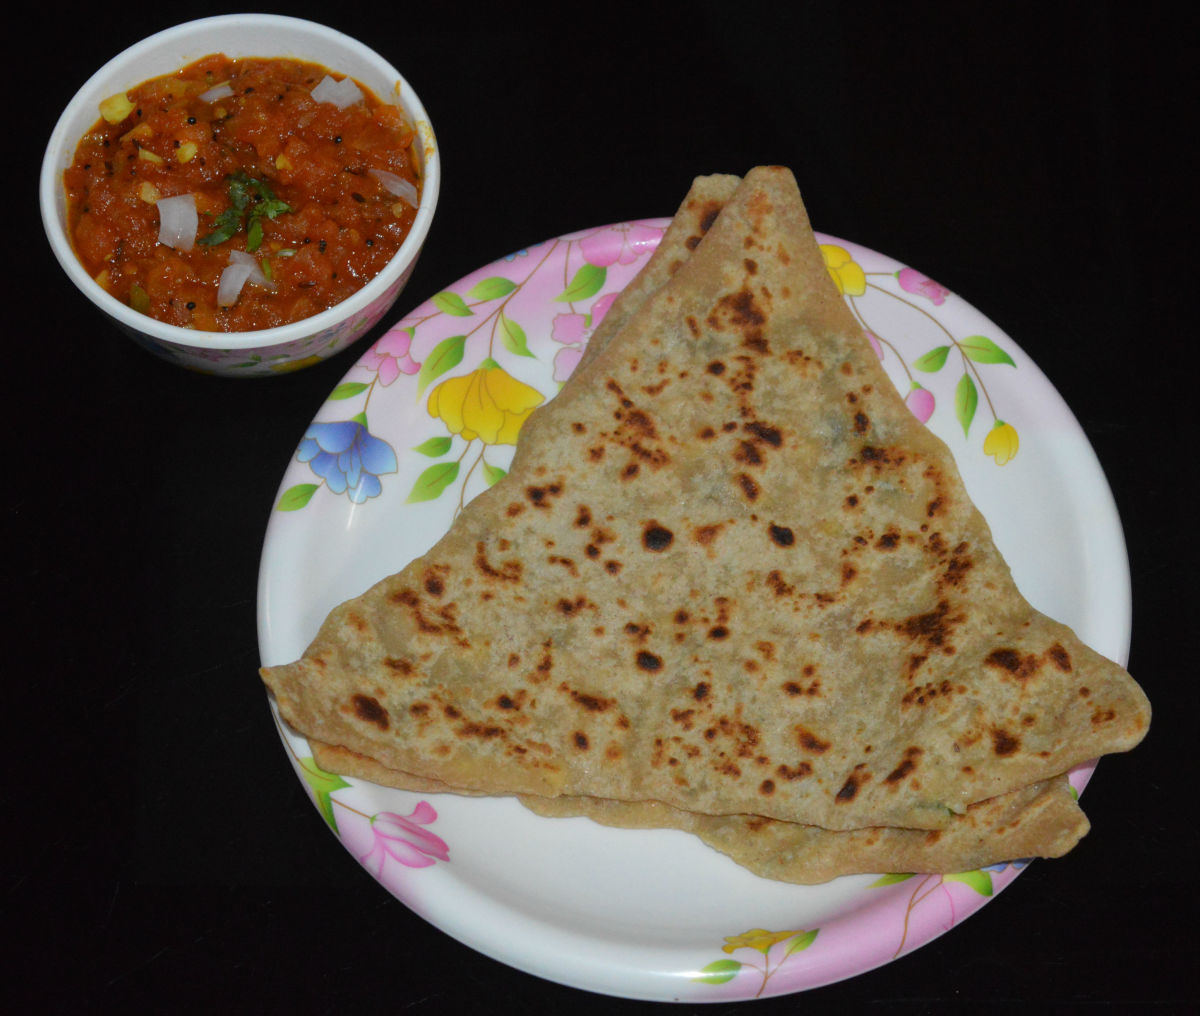 Serve hot paneer parathas with tomato salsa, tomato sauce, or any tangy sauce. Enjoy the taste!